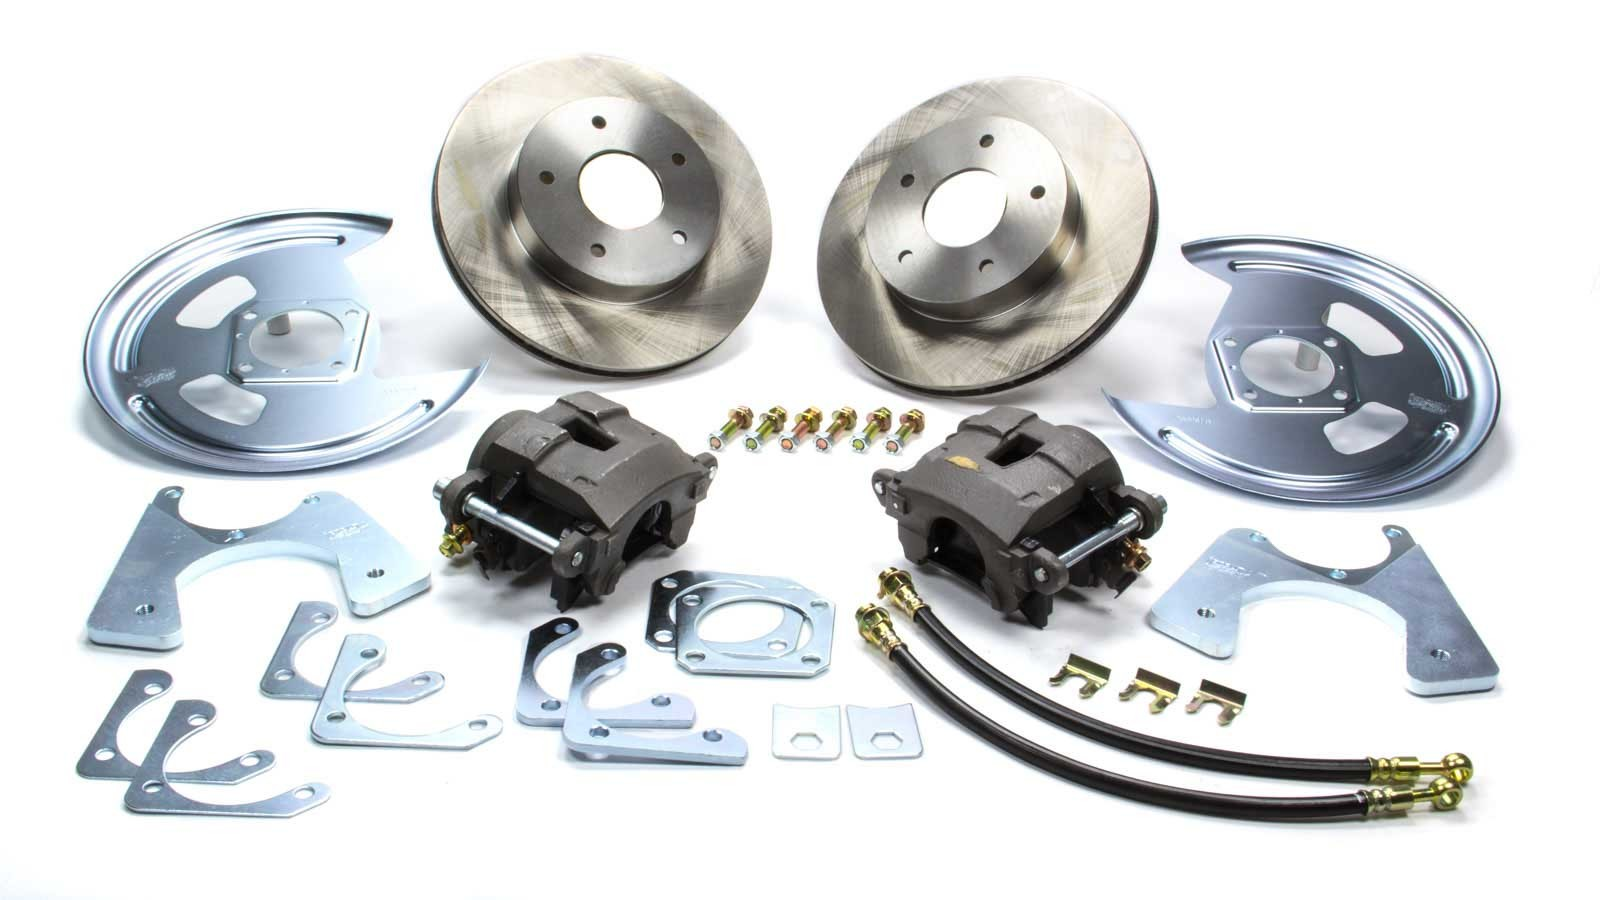 Right Stuff Detailing AFXRDM1 Brake System, Disc Conversion, Rear, 1 Piston Caliper, 11.000 in Rotor, Offset Hat, Iron, Natural, GM 10-Bolt / 12-Bolt, Kit